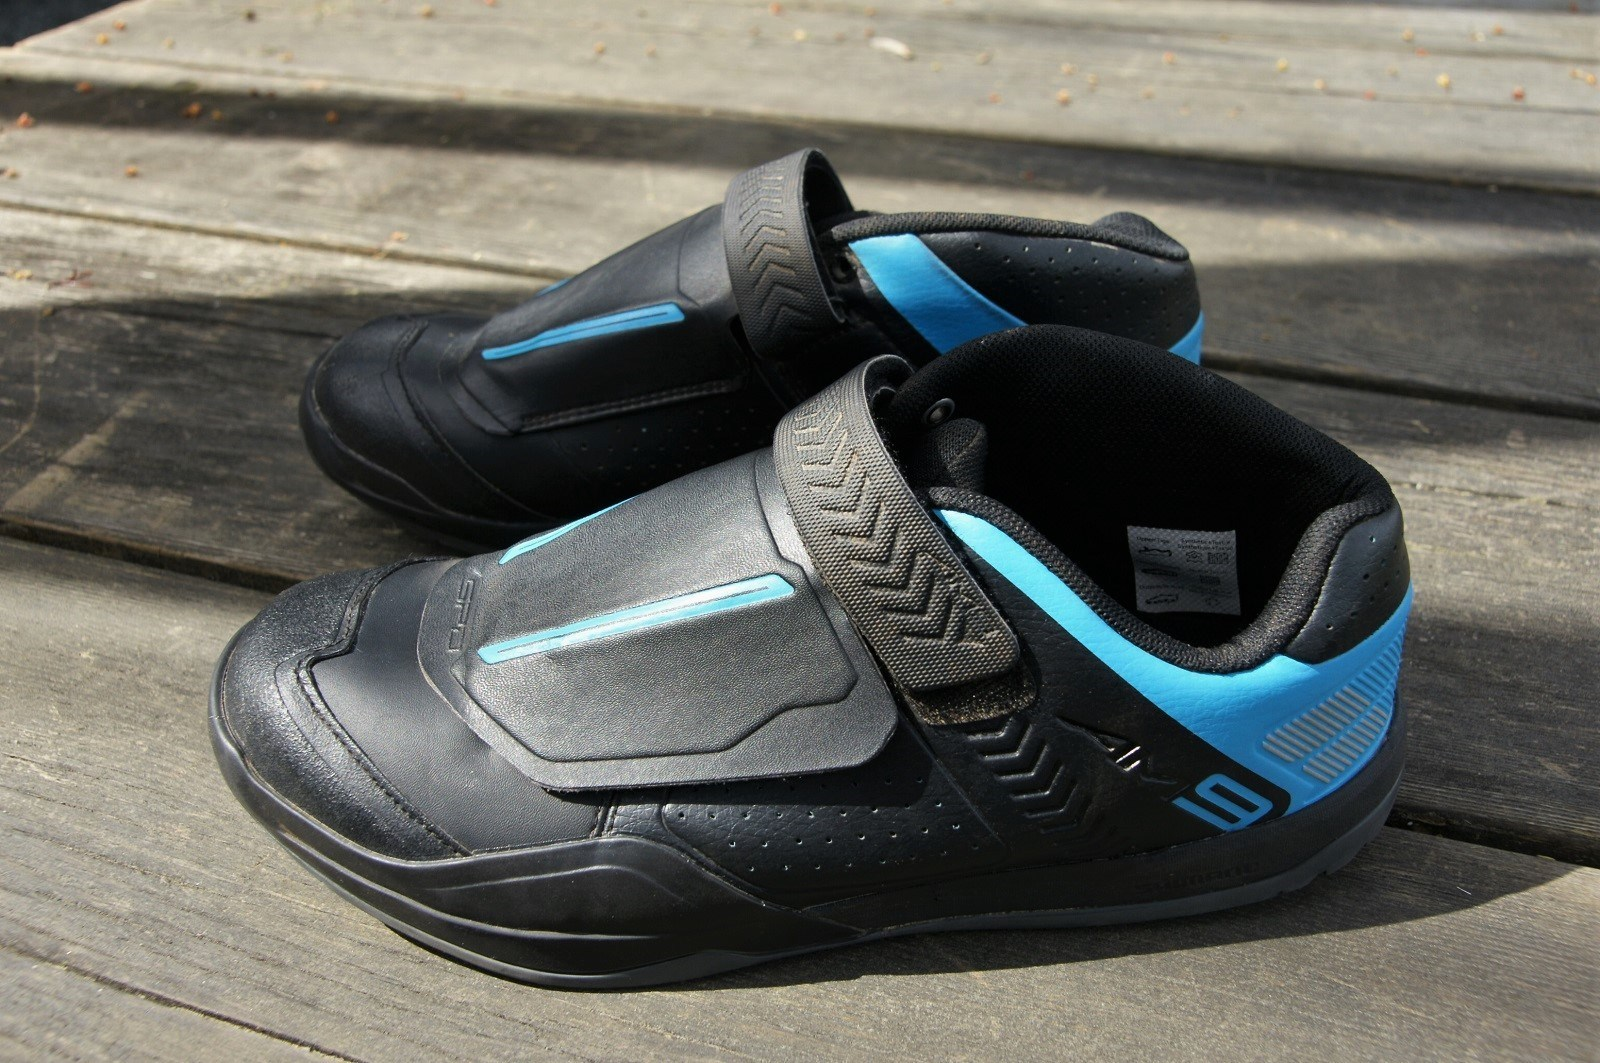 f1a35a1c205 Shimano AM9. Shoes. Oh my god, shoes. These shoes cost 179 dollars; let's  get 'em!